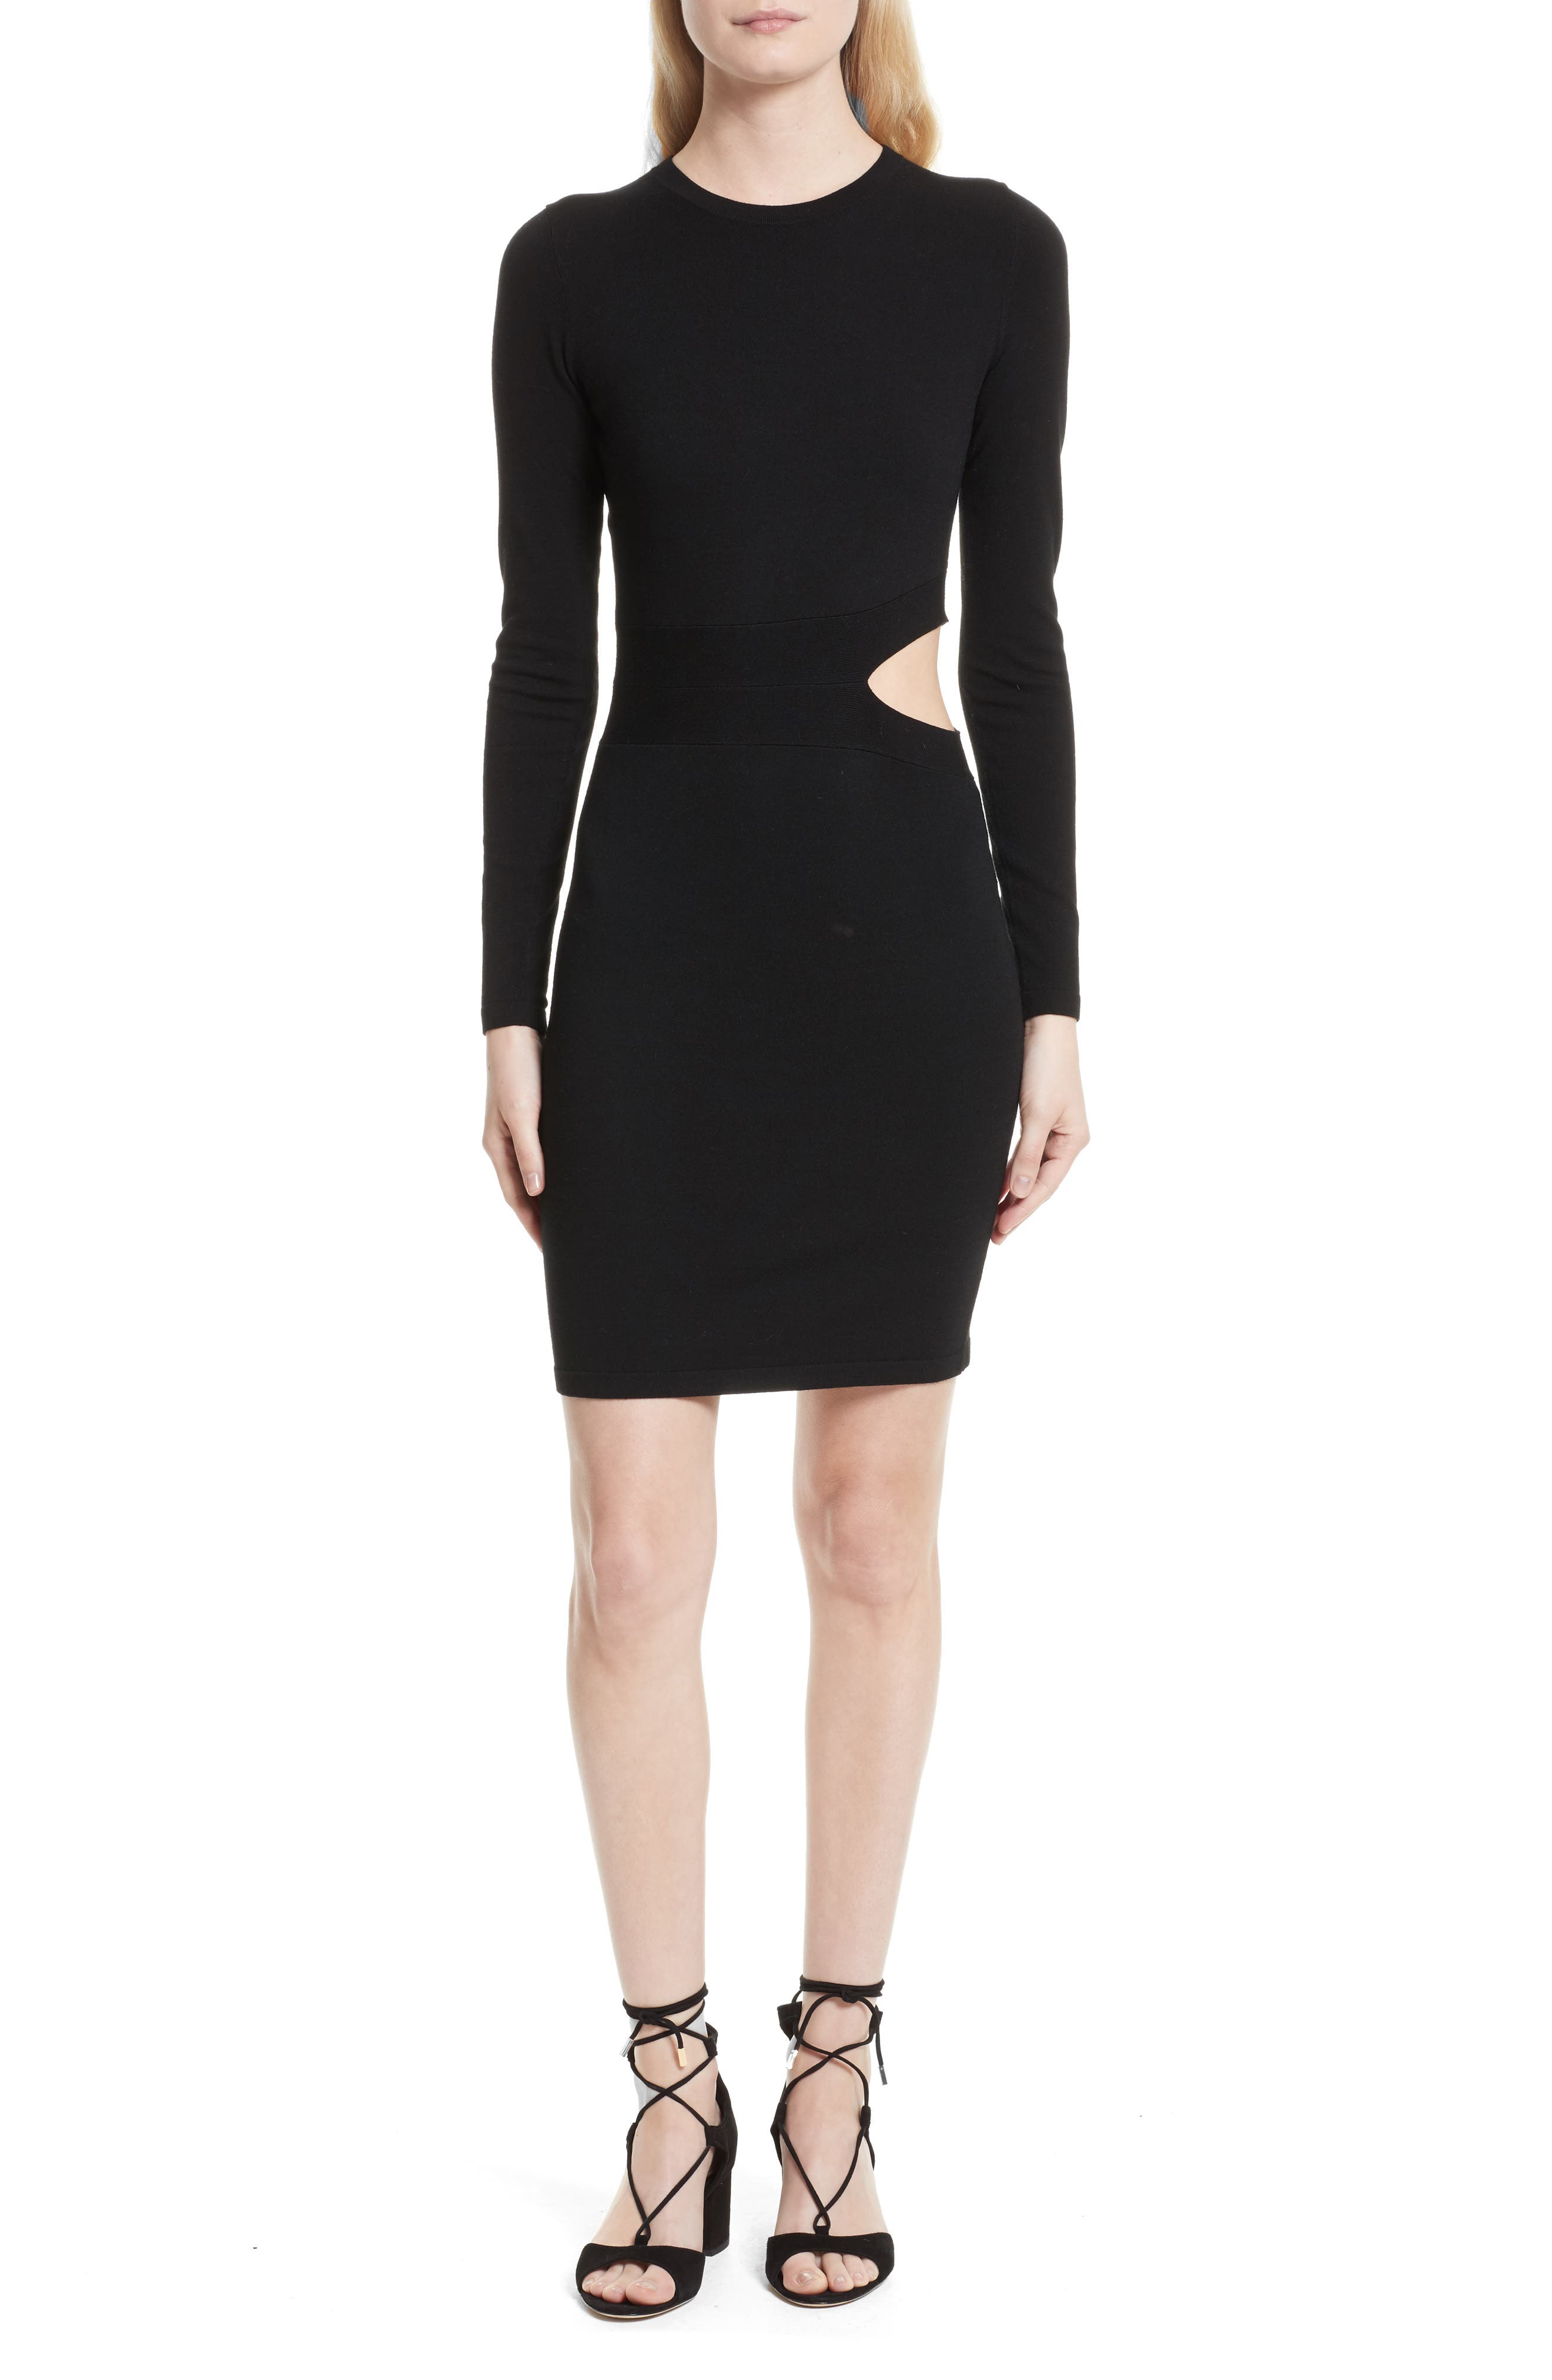 Alternate Image 1 Selected - Elizabeth and James Railey Cutout Dress